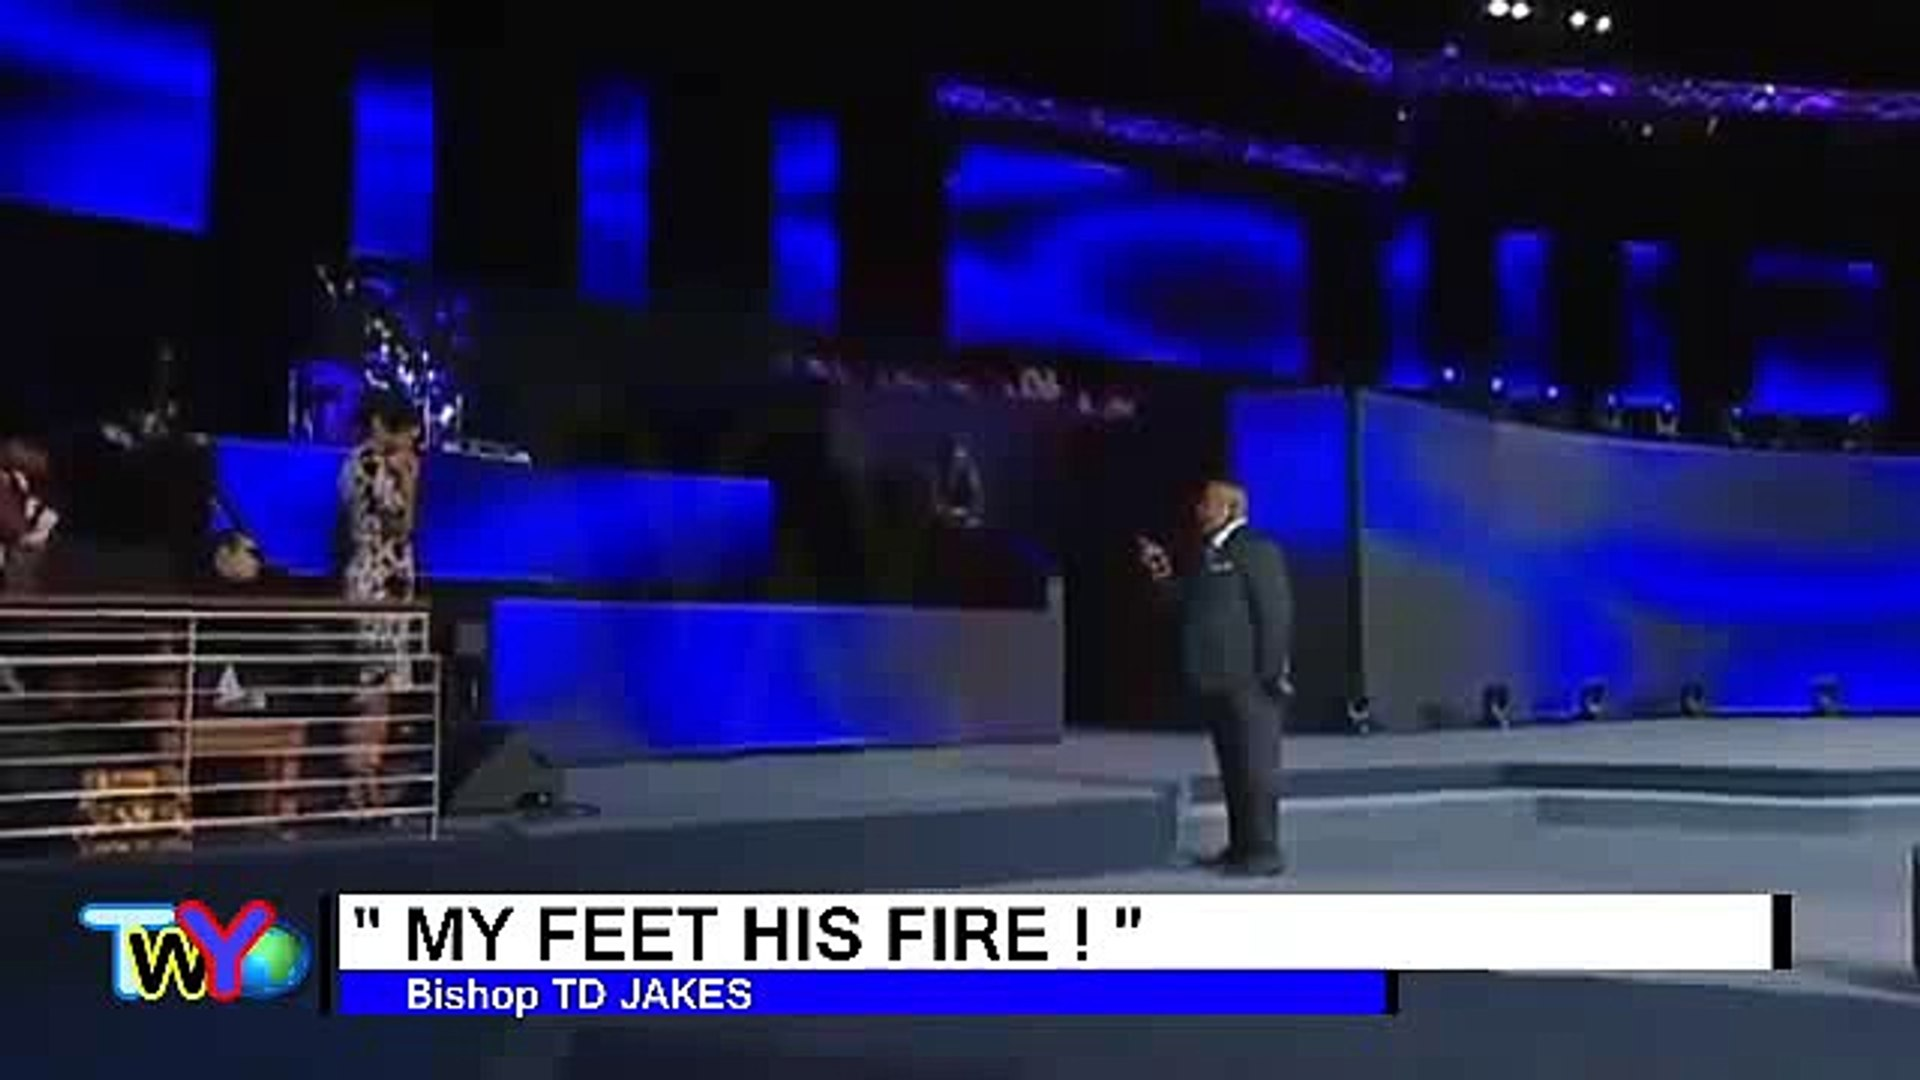 TD Jakes 2016 - My Feet His Fire  - 002